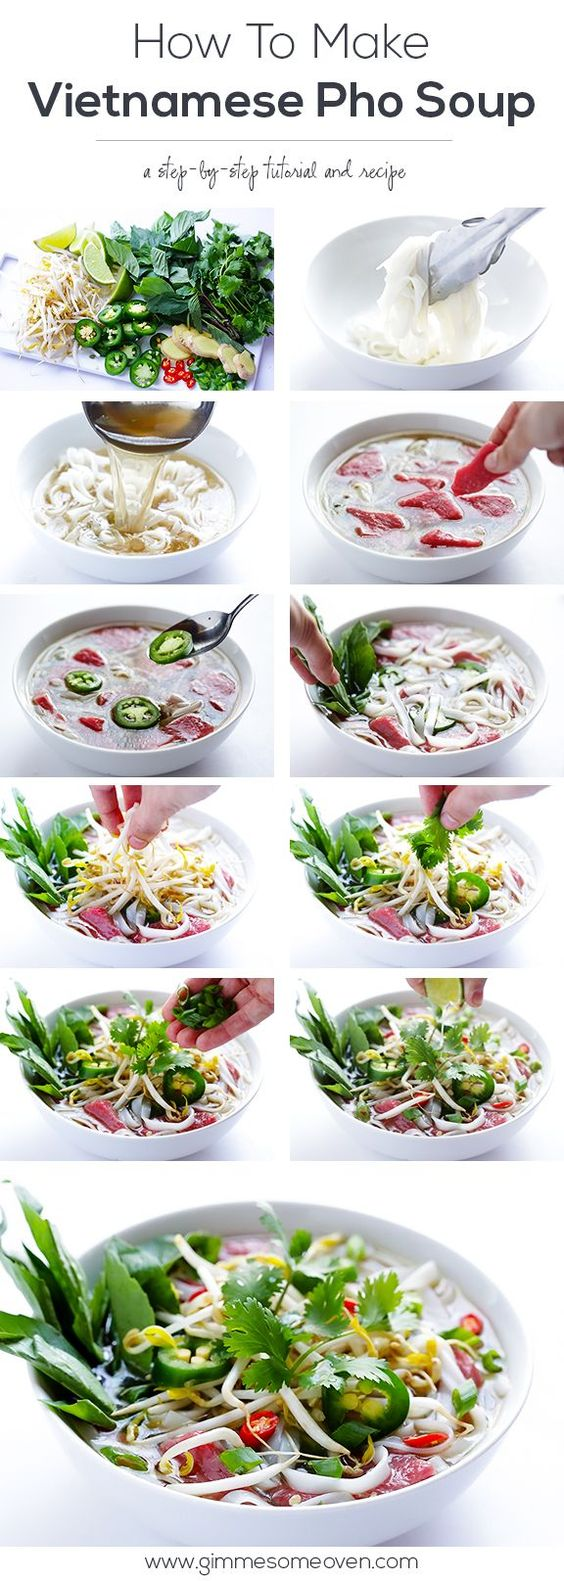 If you love Vietnamese Pho Soup, you should try making it homemade! It's so simple!